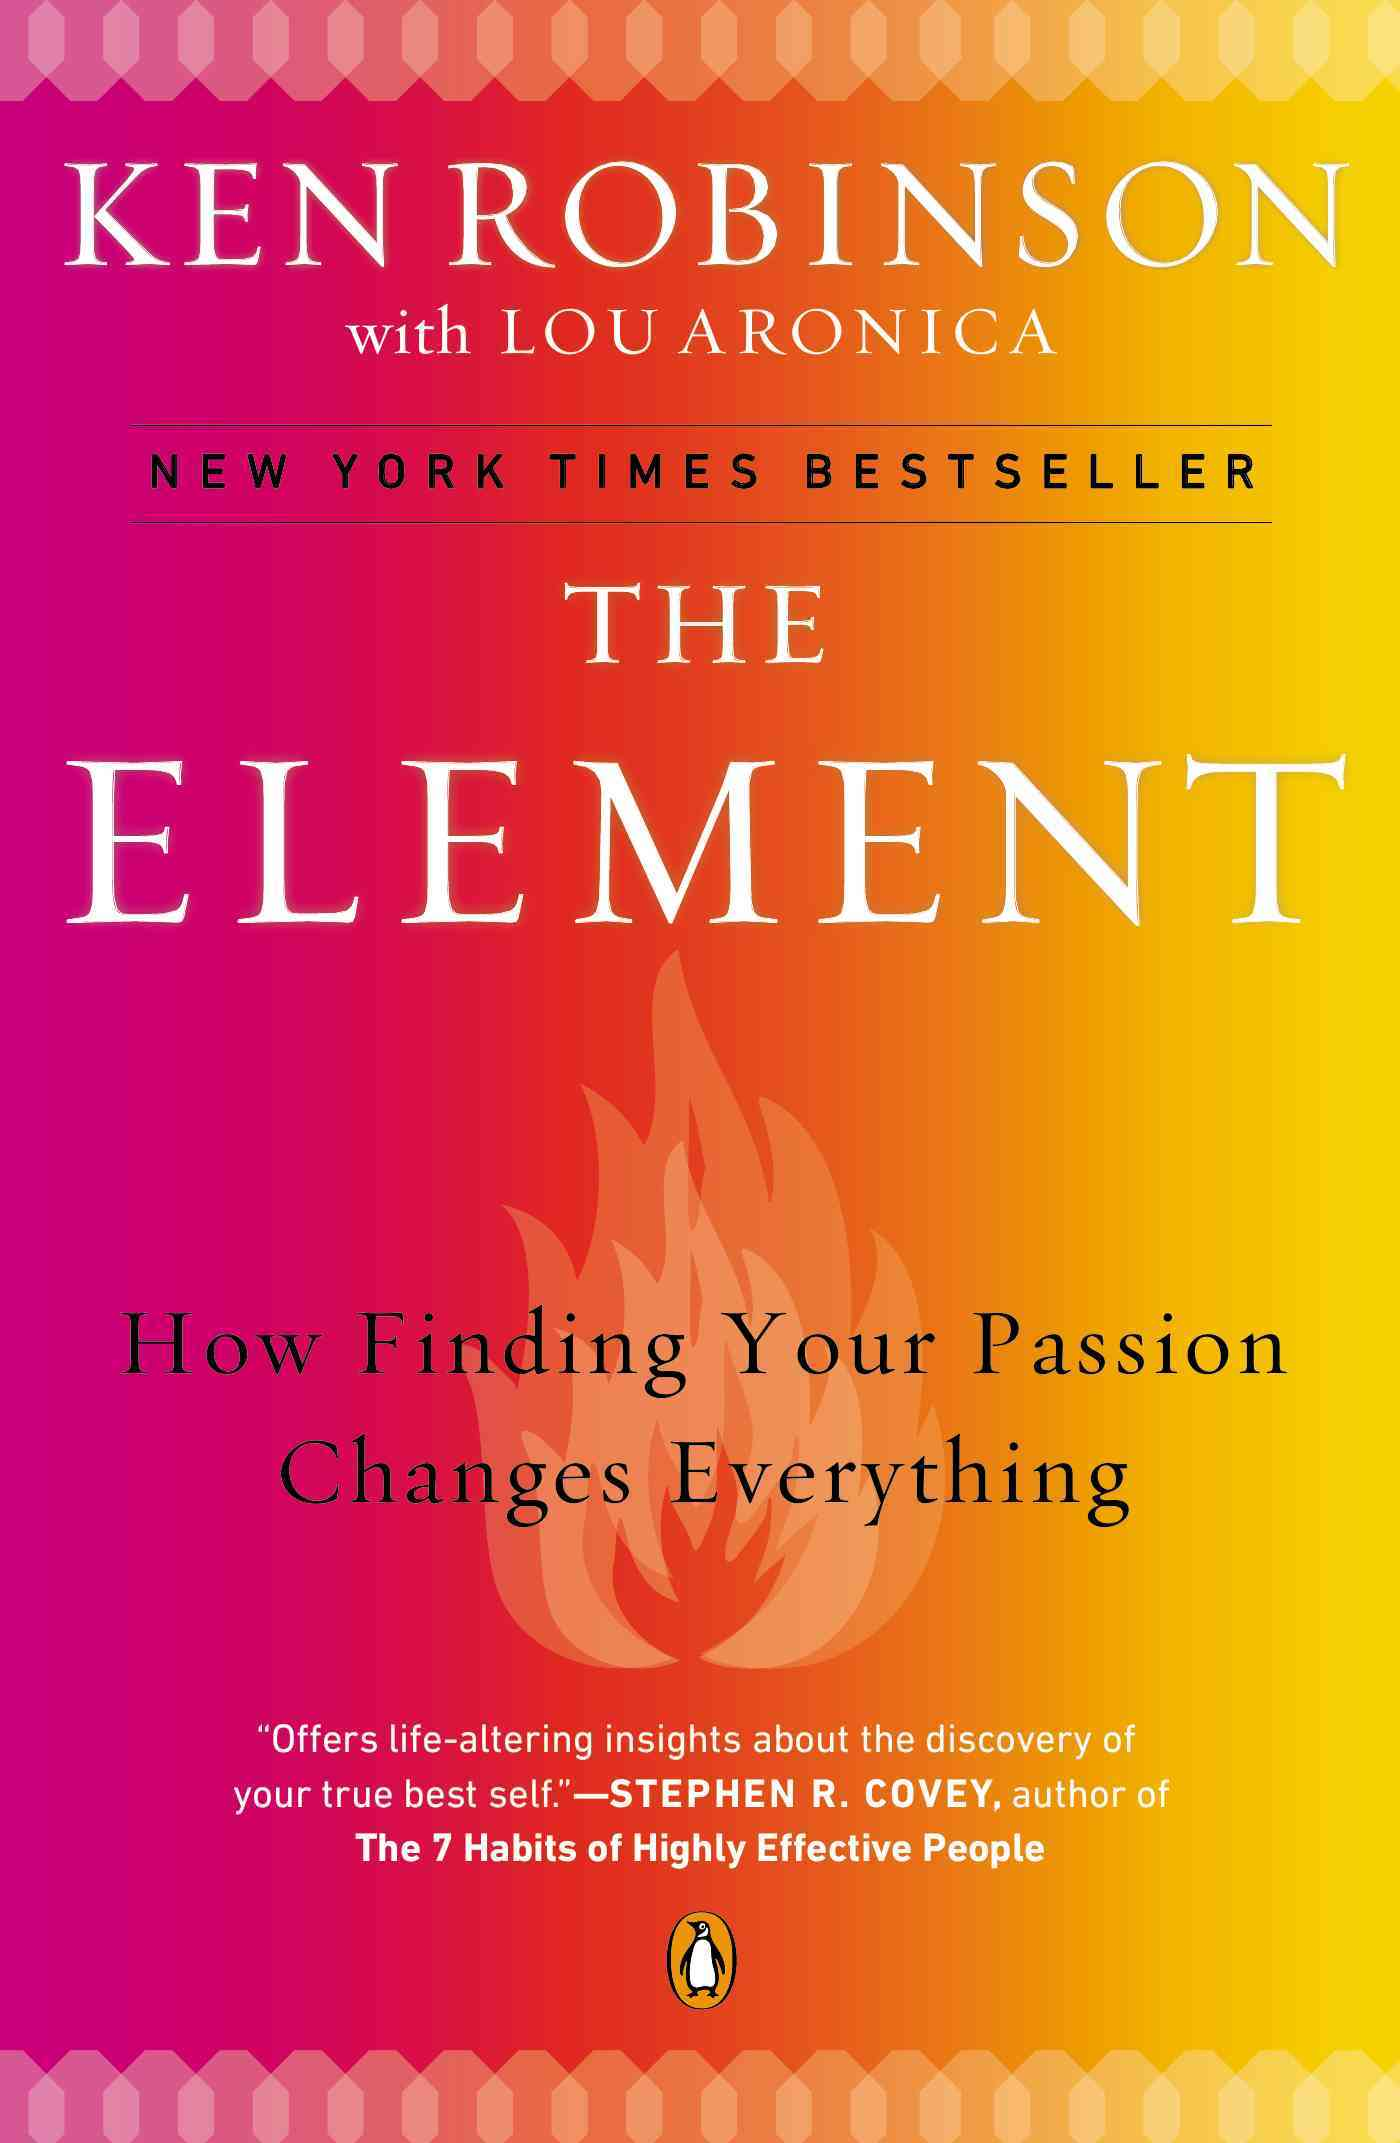 The Element: How Finding Your Passion Changes Everything (Paperback)